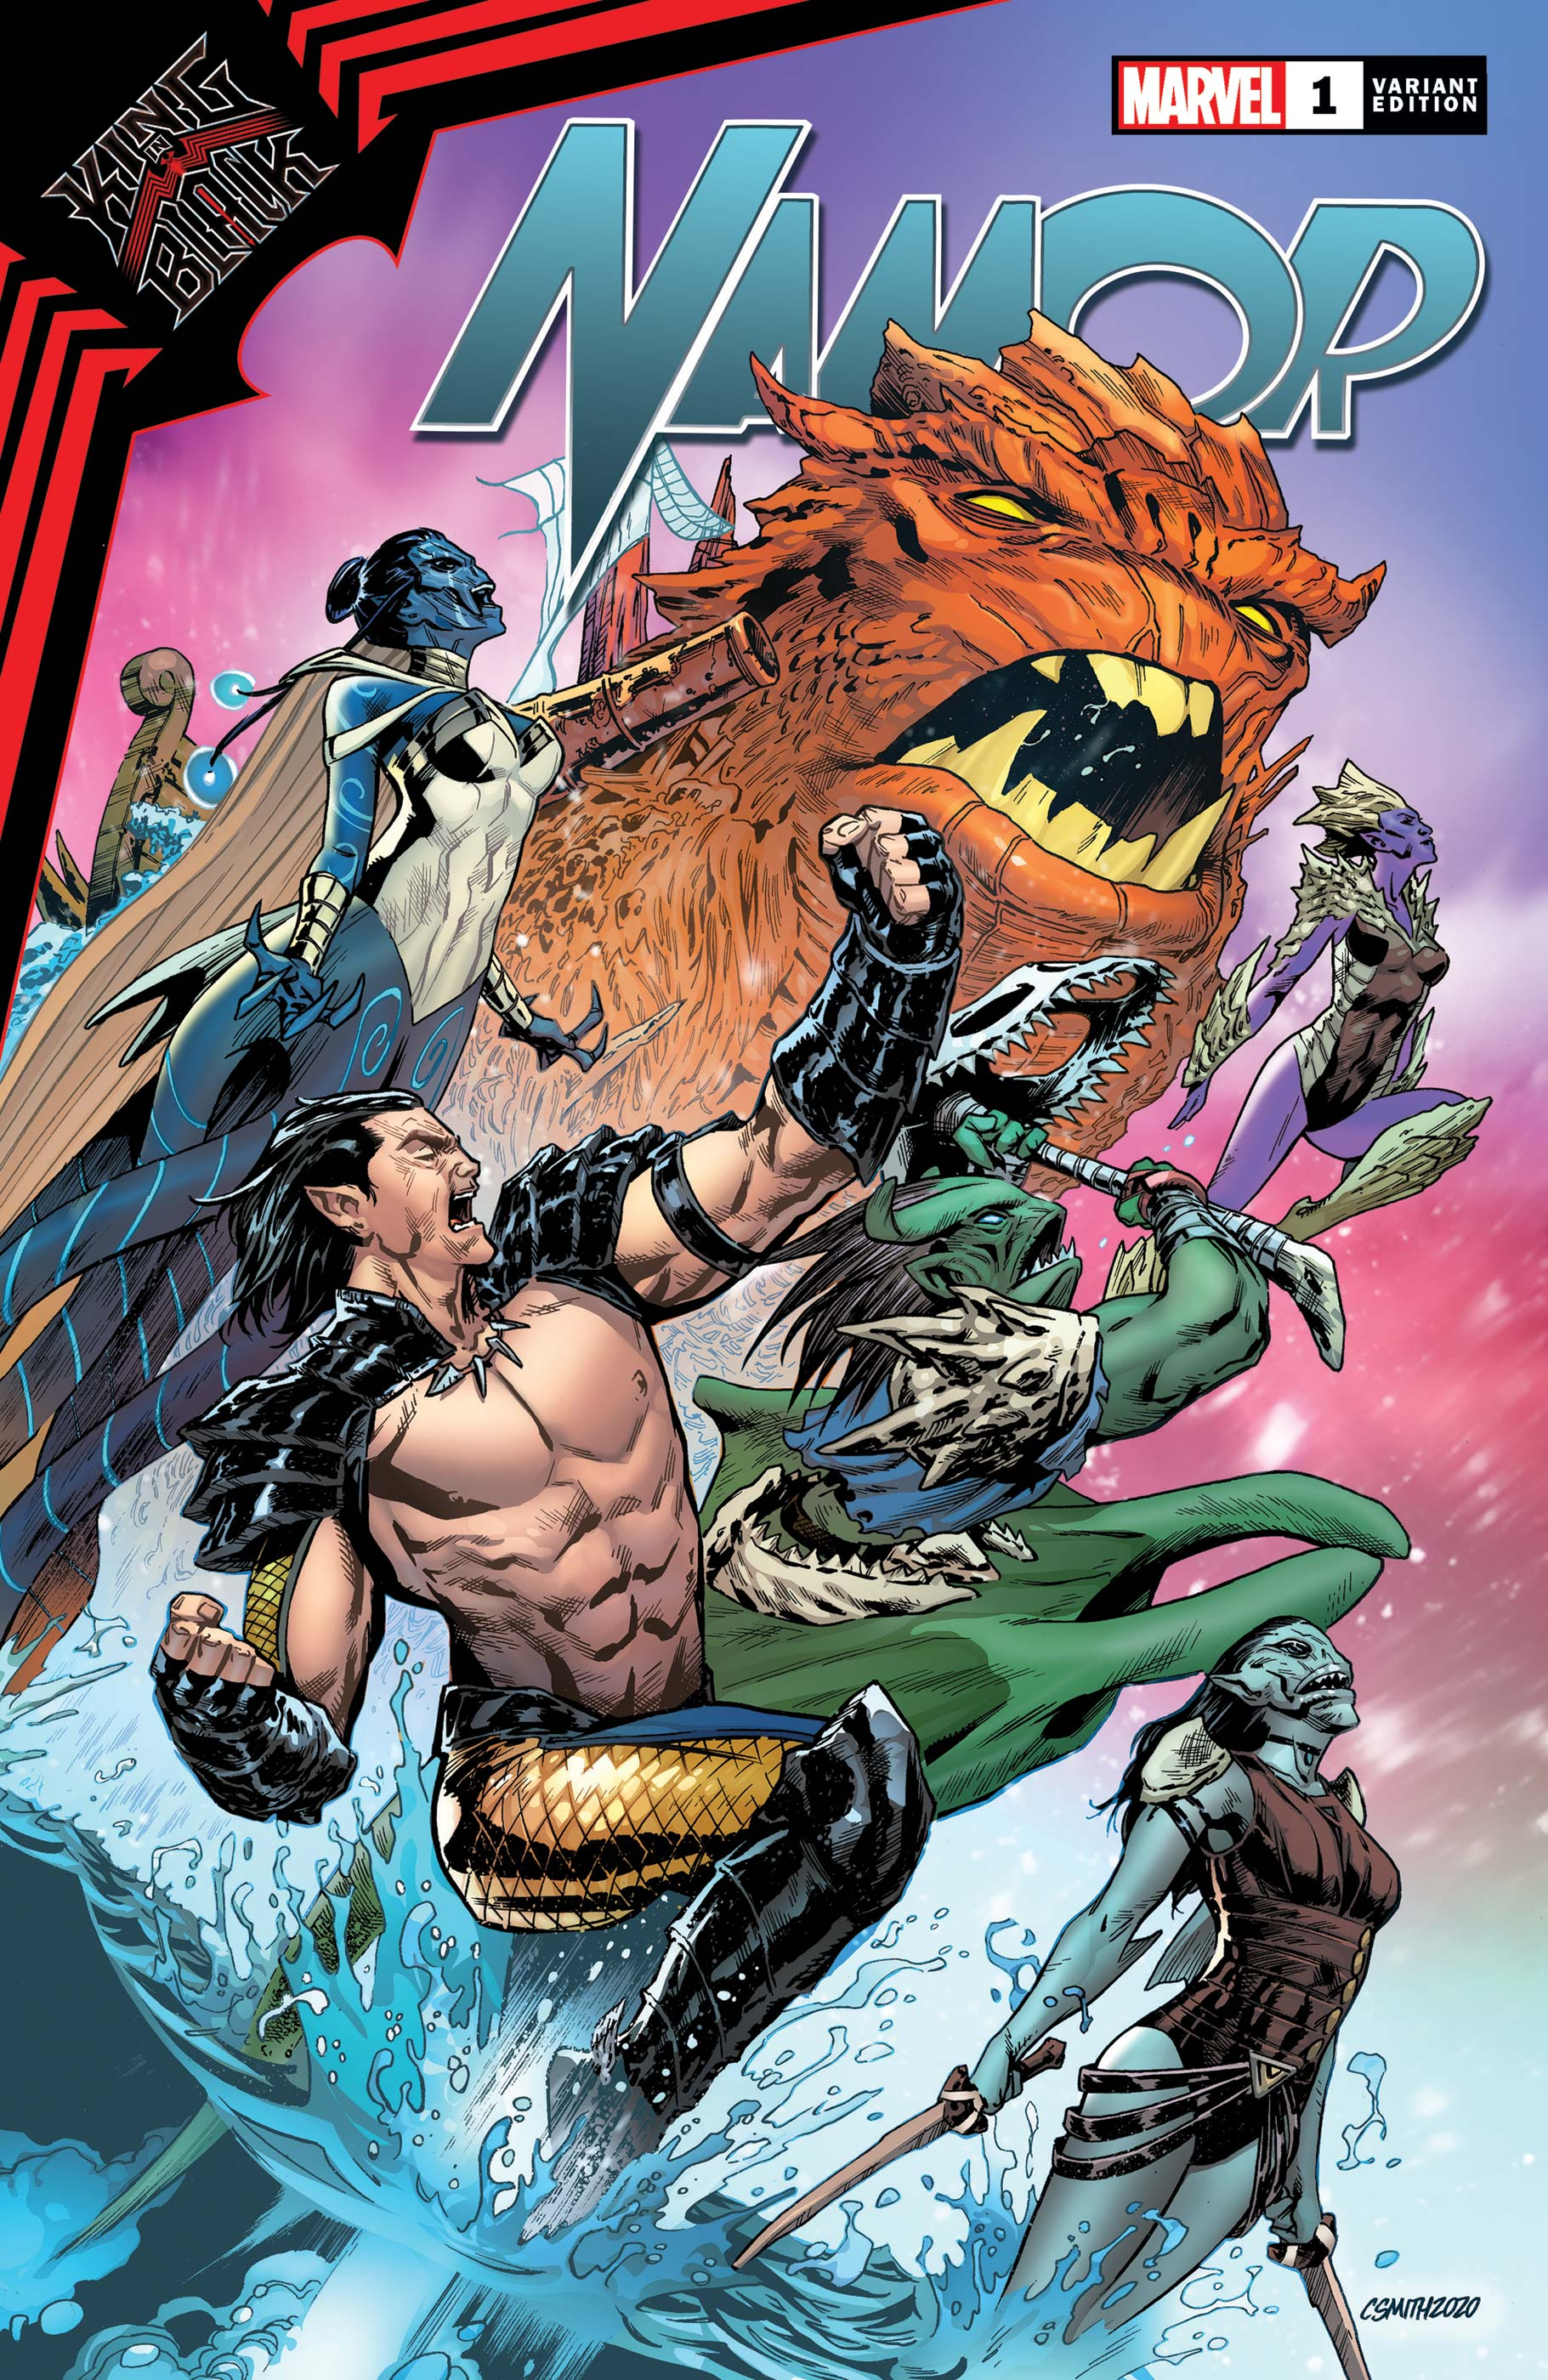 King in Black: Namor (2020) #1 (Variant)